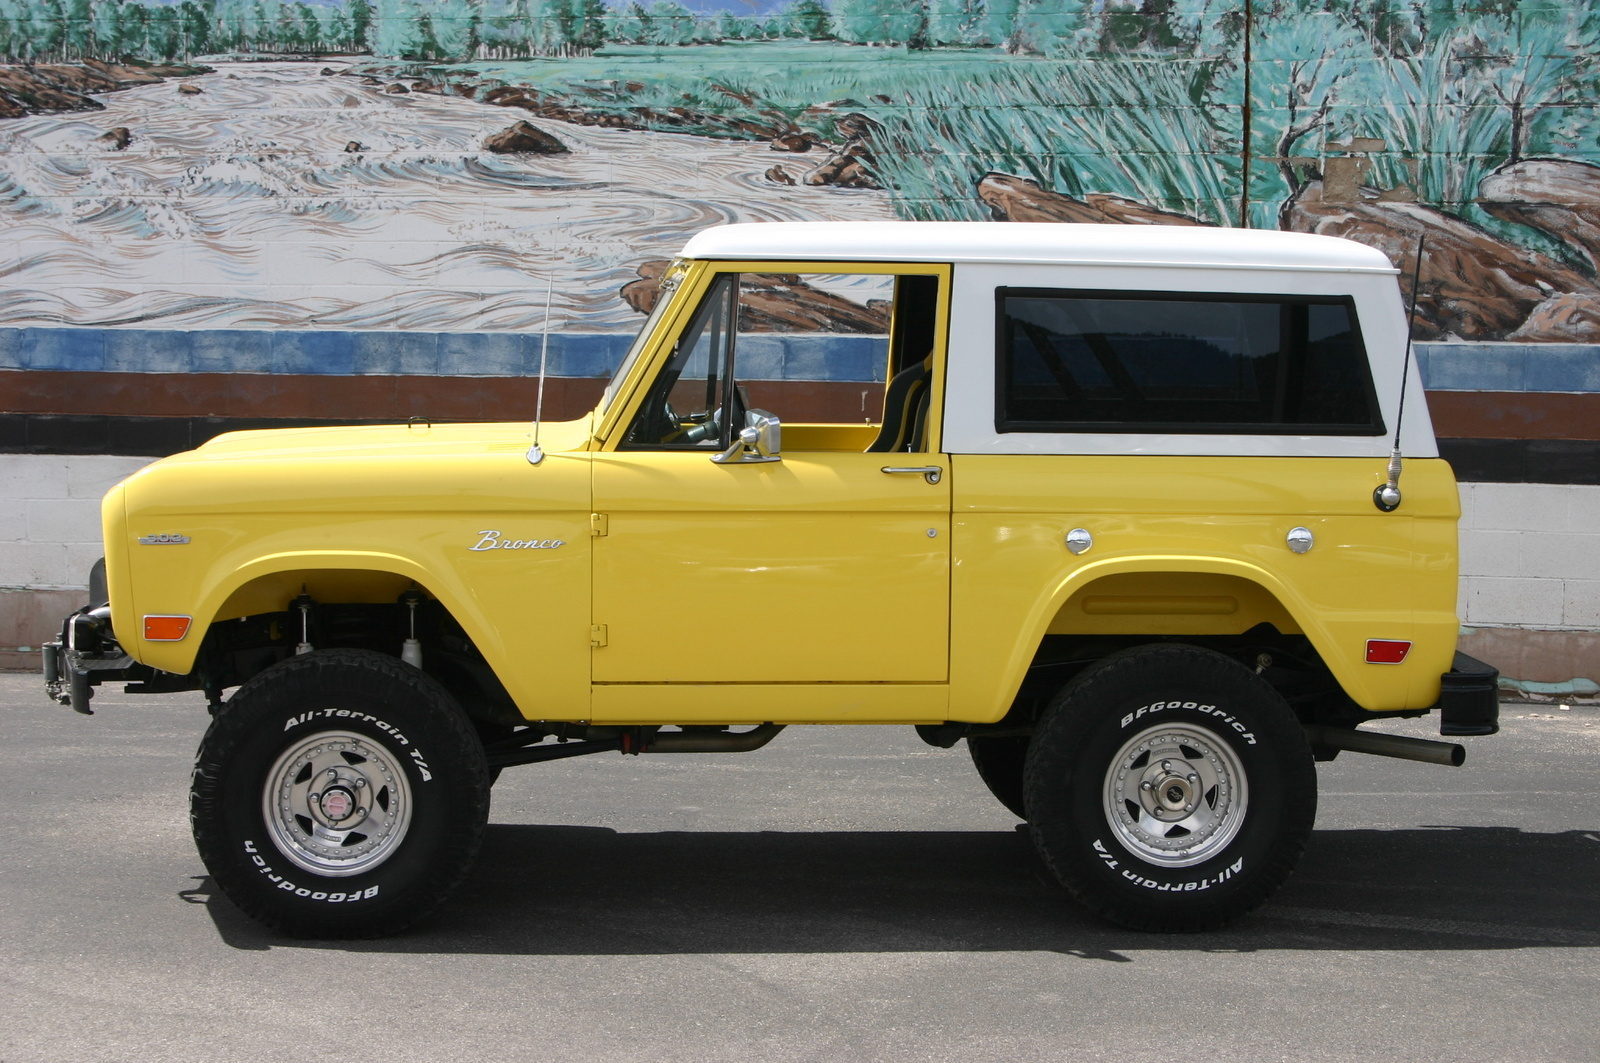 Ford Bronco 1968 Review Amazing Pictures And Images Look At The Car 1995 Nissan Pick Up 2 4 Wiring Diagram Photo